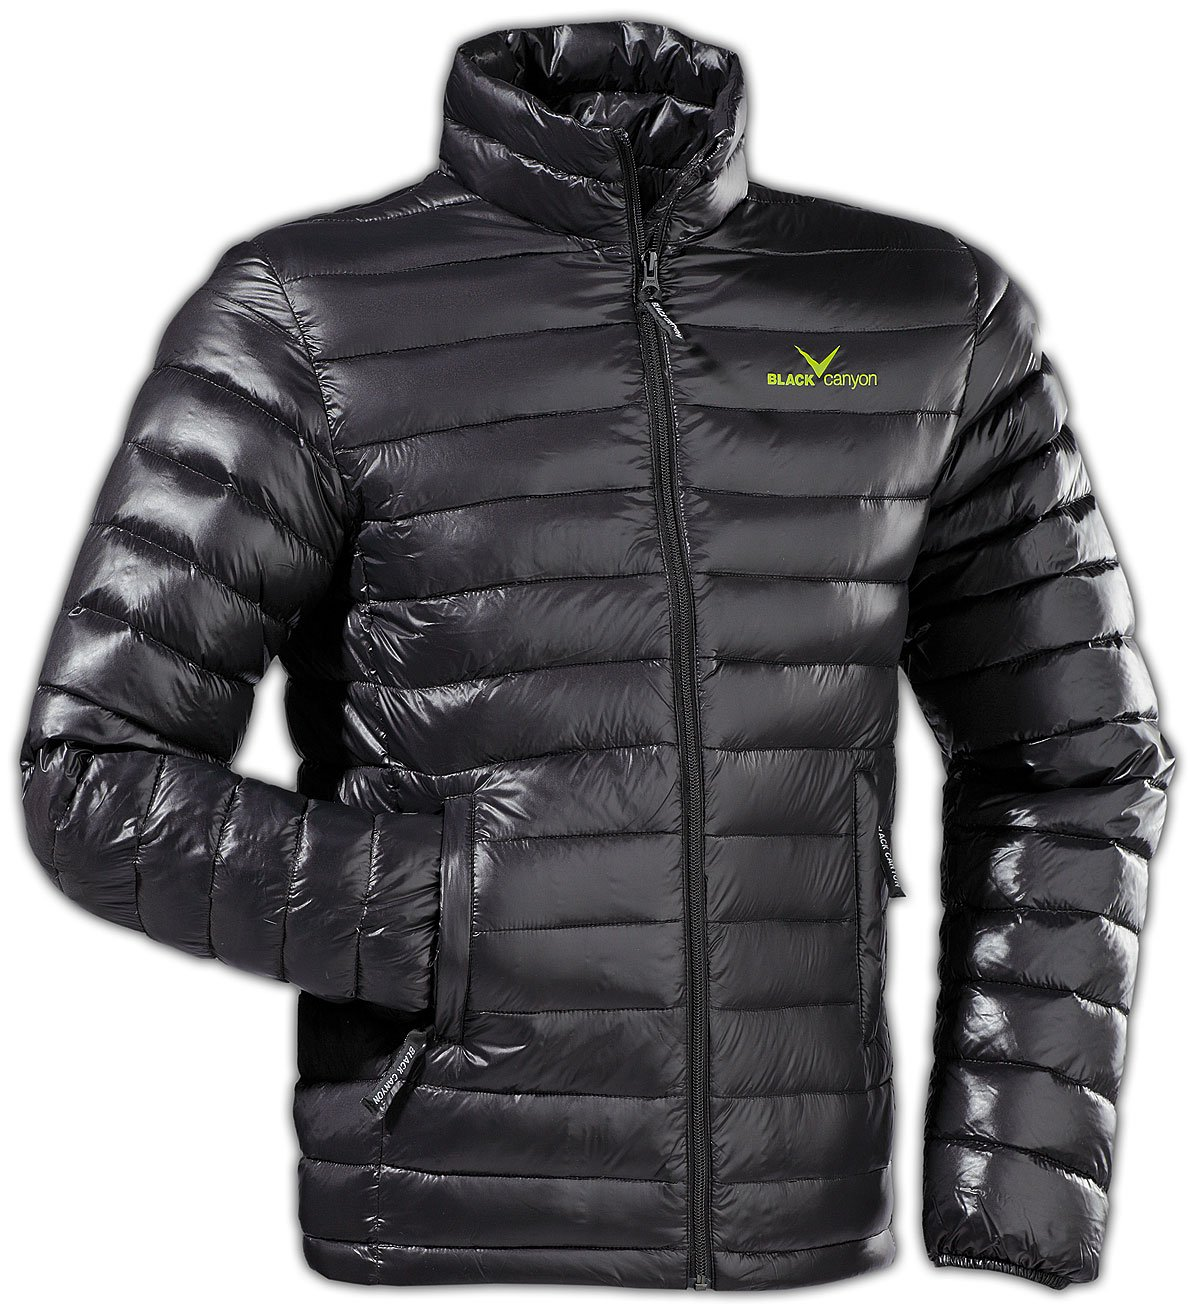 Black Canyon Herren Daunenjacke Down Jacket Winterjacke